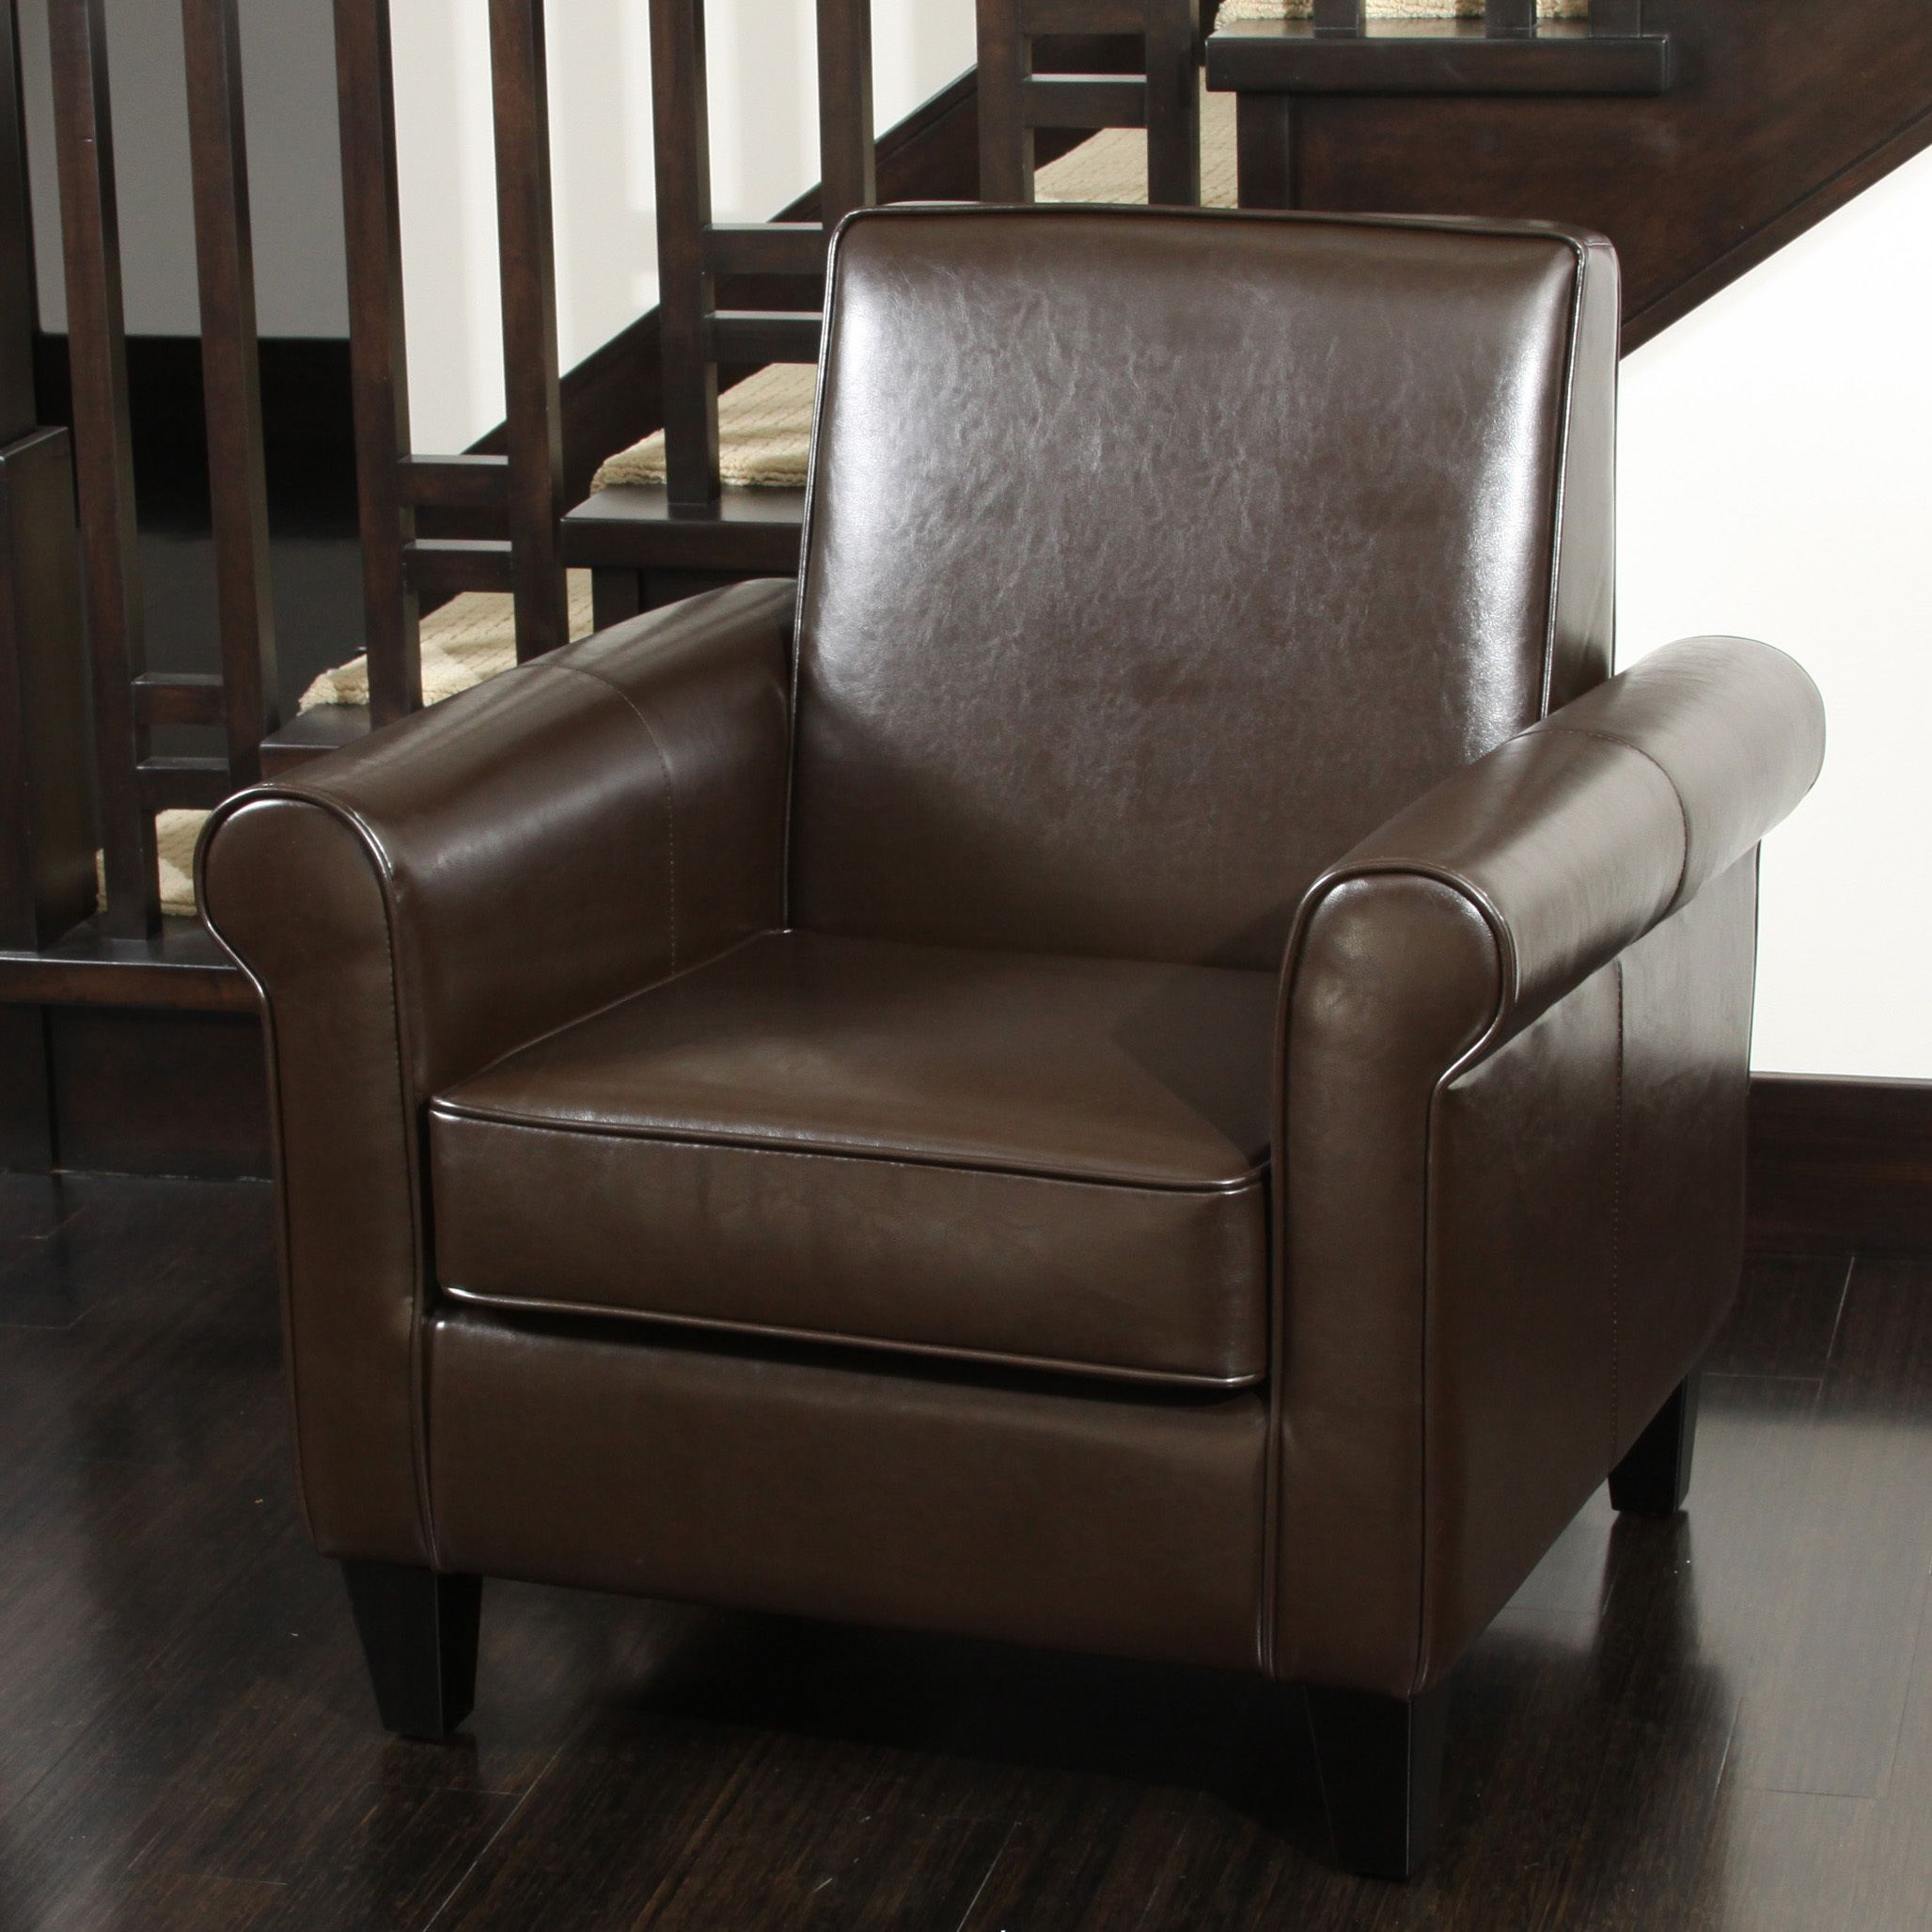 Small Leather Club Chairs Phil And Teds High Chair Enjoy Elegant Appeal Without Losing Floorspace When You